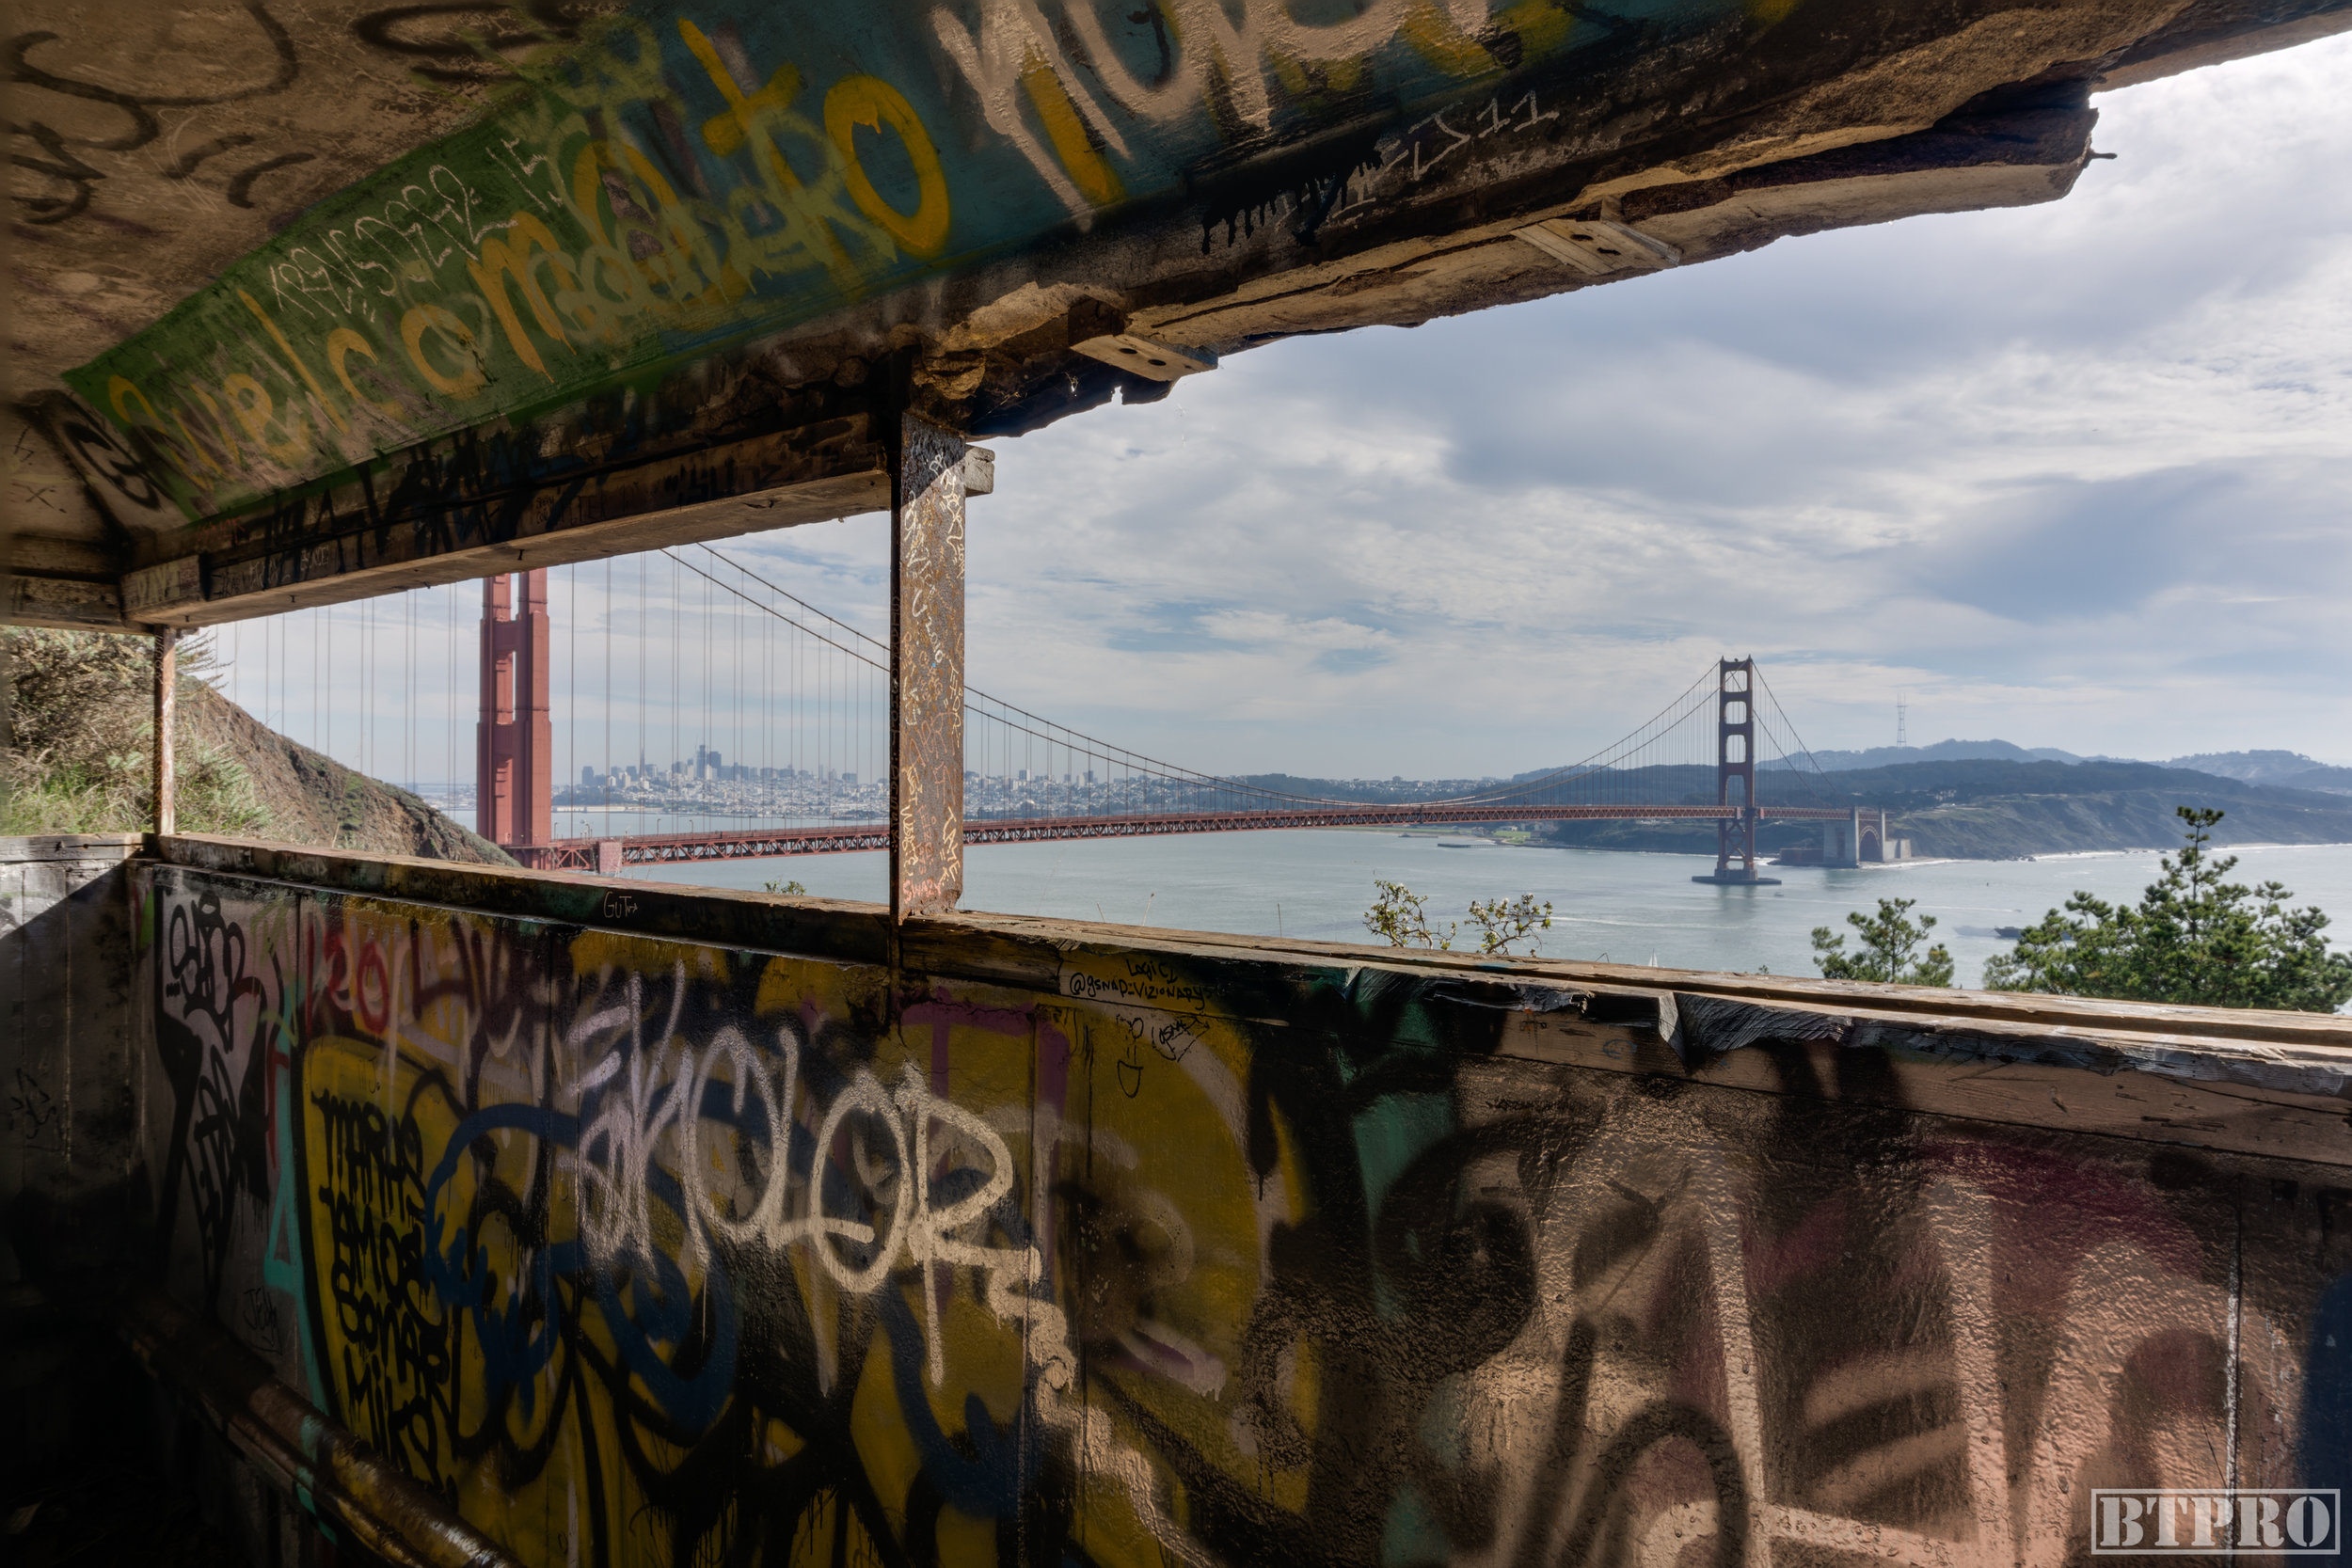 abandoned, abandoned photography, bunker, marin, marin headlands, sf, san francisco, bay area, photography